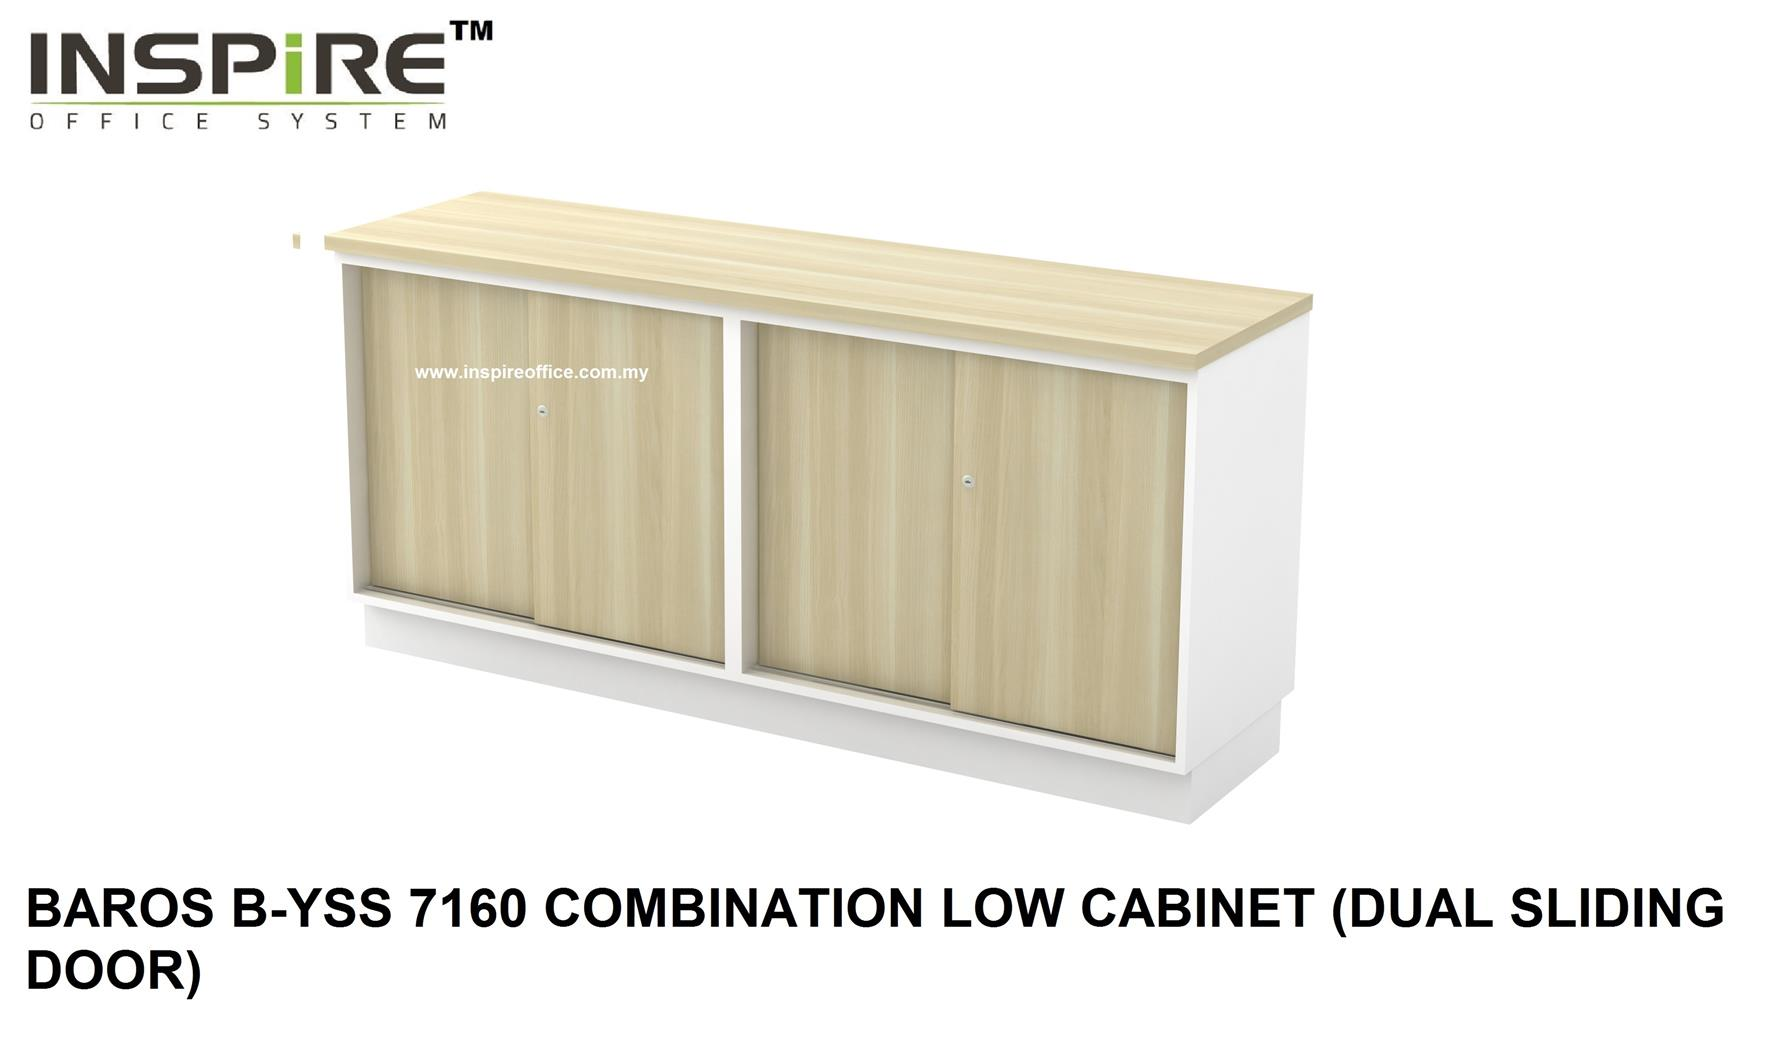 BAROS B-YSS 7160 COMBINATION LOW CABINET (DUAL SLIDING DOOR)